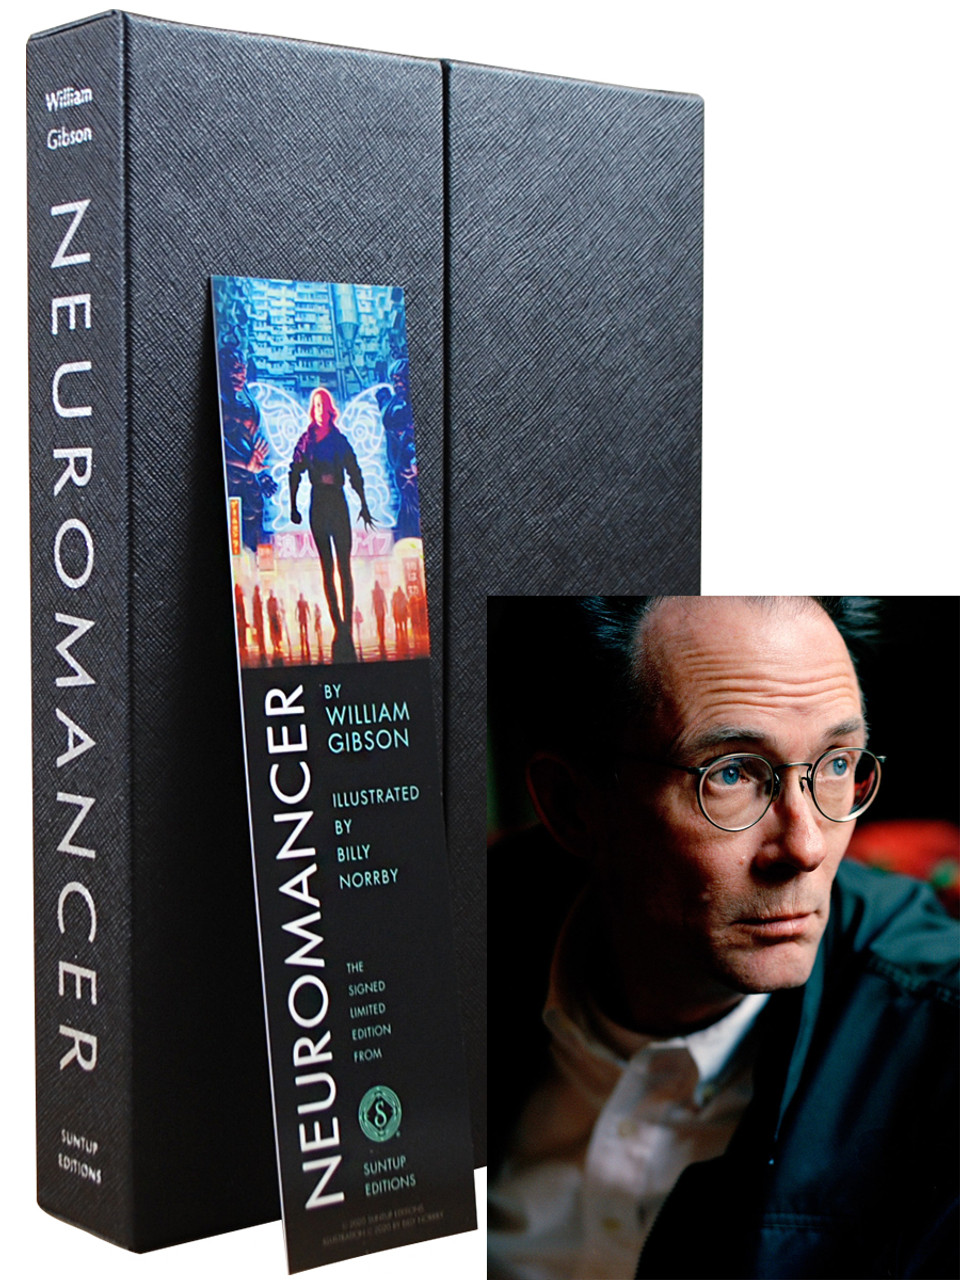 """William Gibson """"Neuromancer"""" Signed Limited Edition, No. 90 of 250 Slipcased [Very Fine]"""